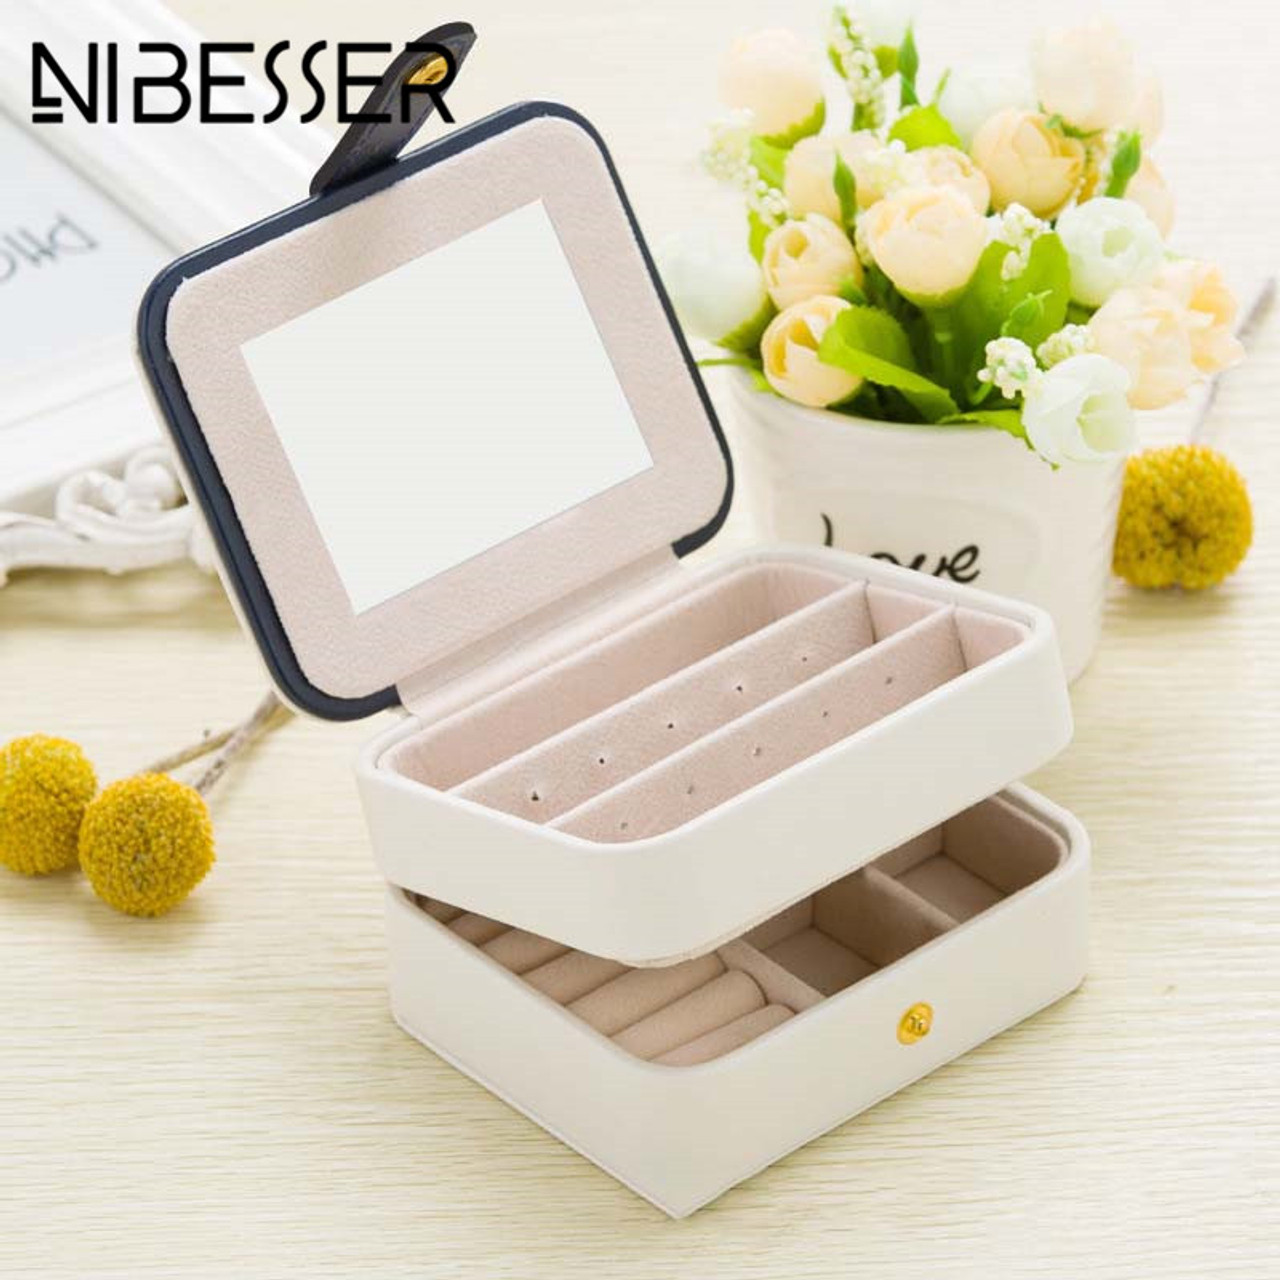 NIBESSER Cosmetic Bags Makeup Bag Women Travel Jewelry Box Professional  Jewel Casket Necessaries Make Up Organizer storage box - OnshopDeals.Com f8c551dda20cb